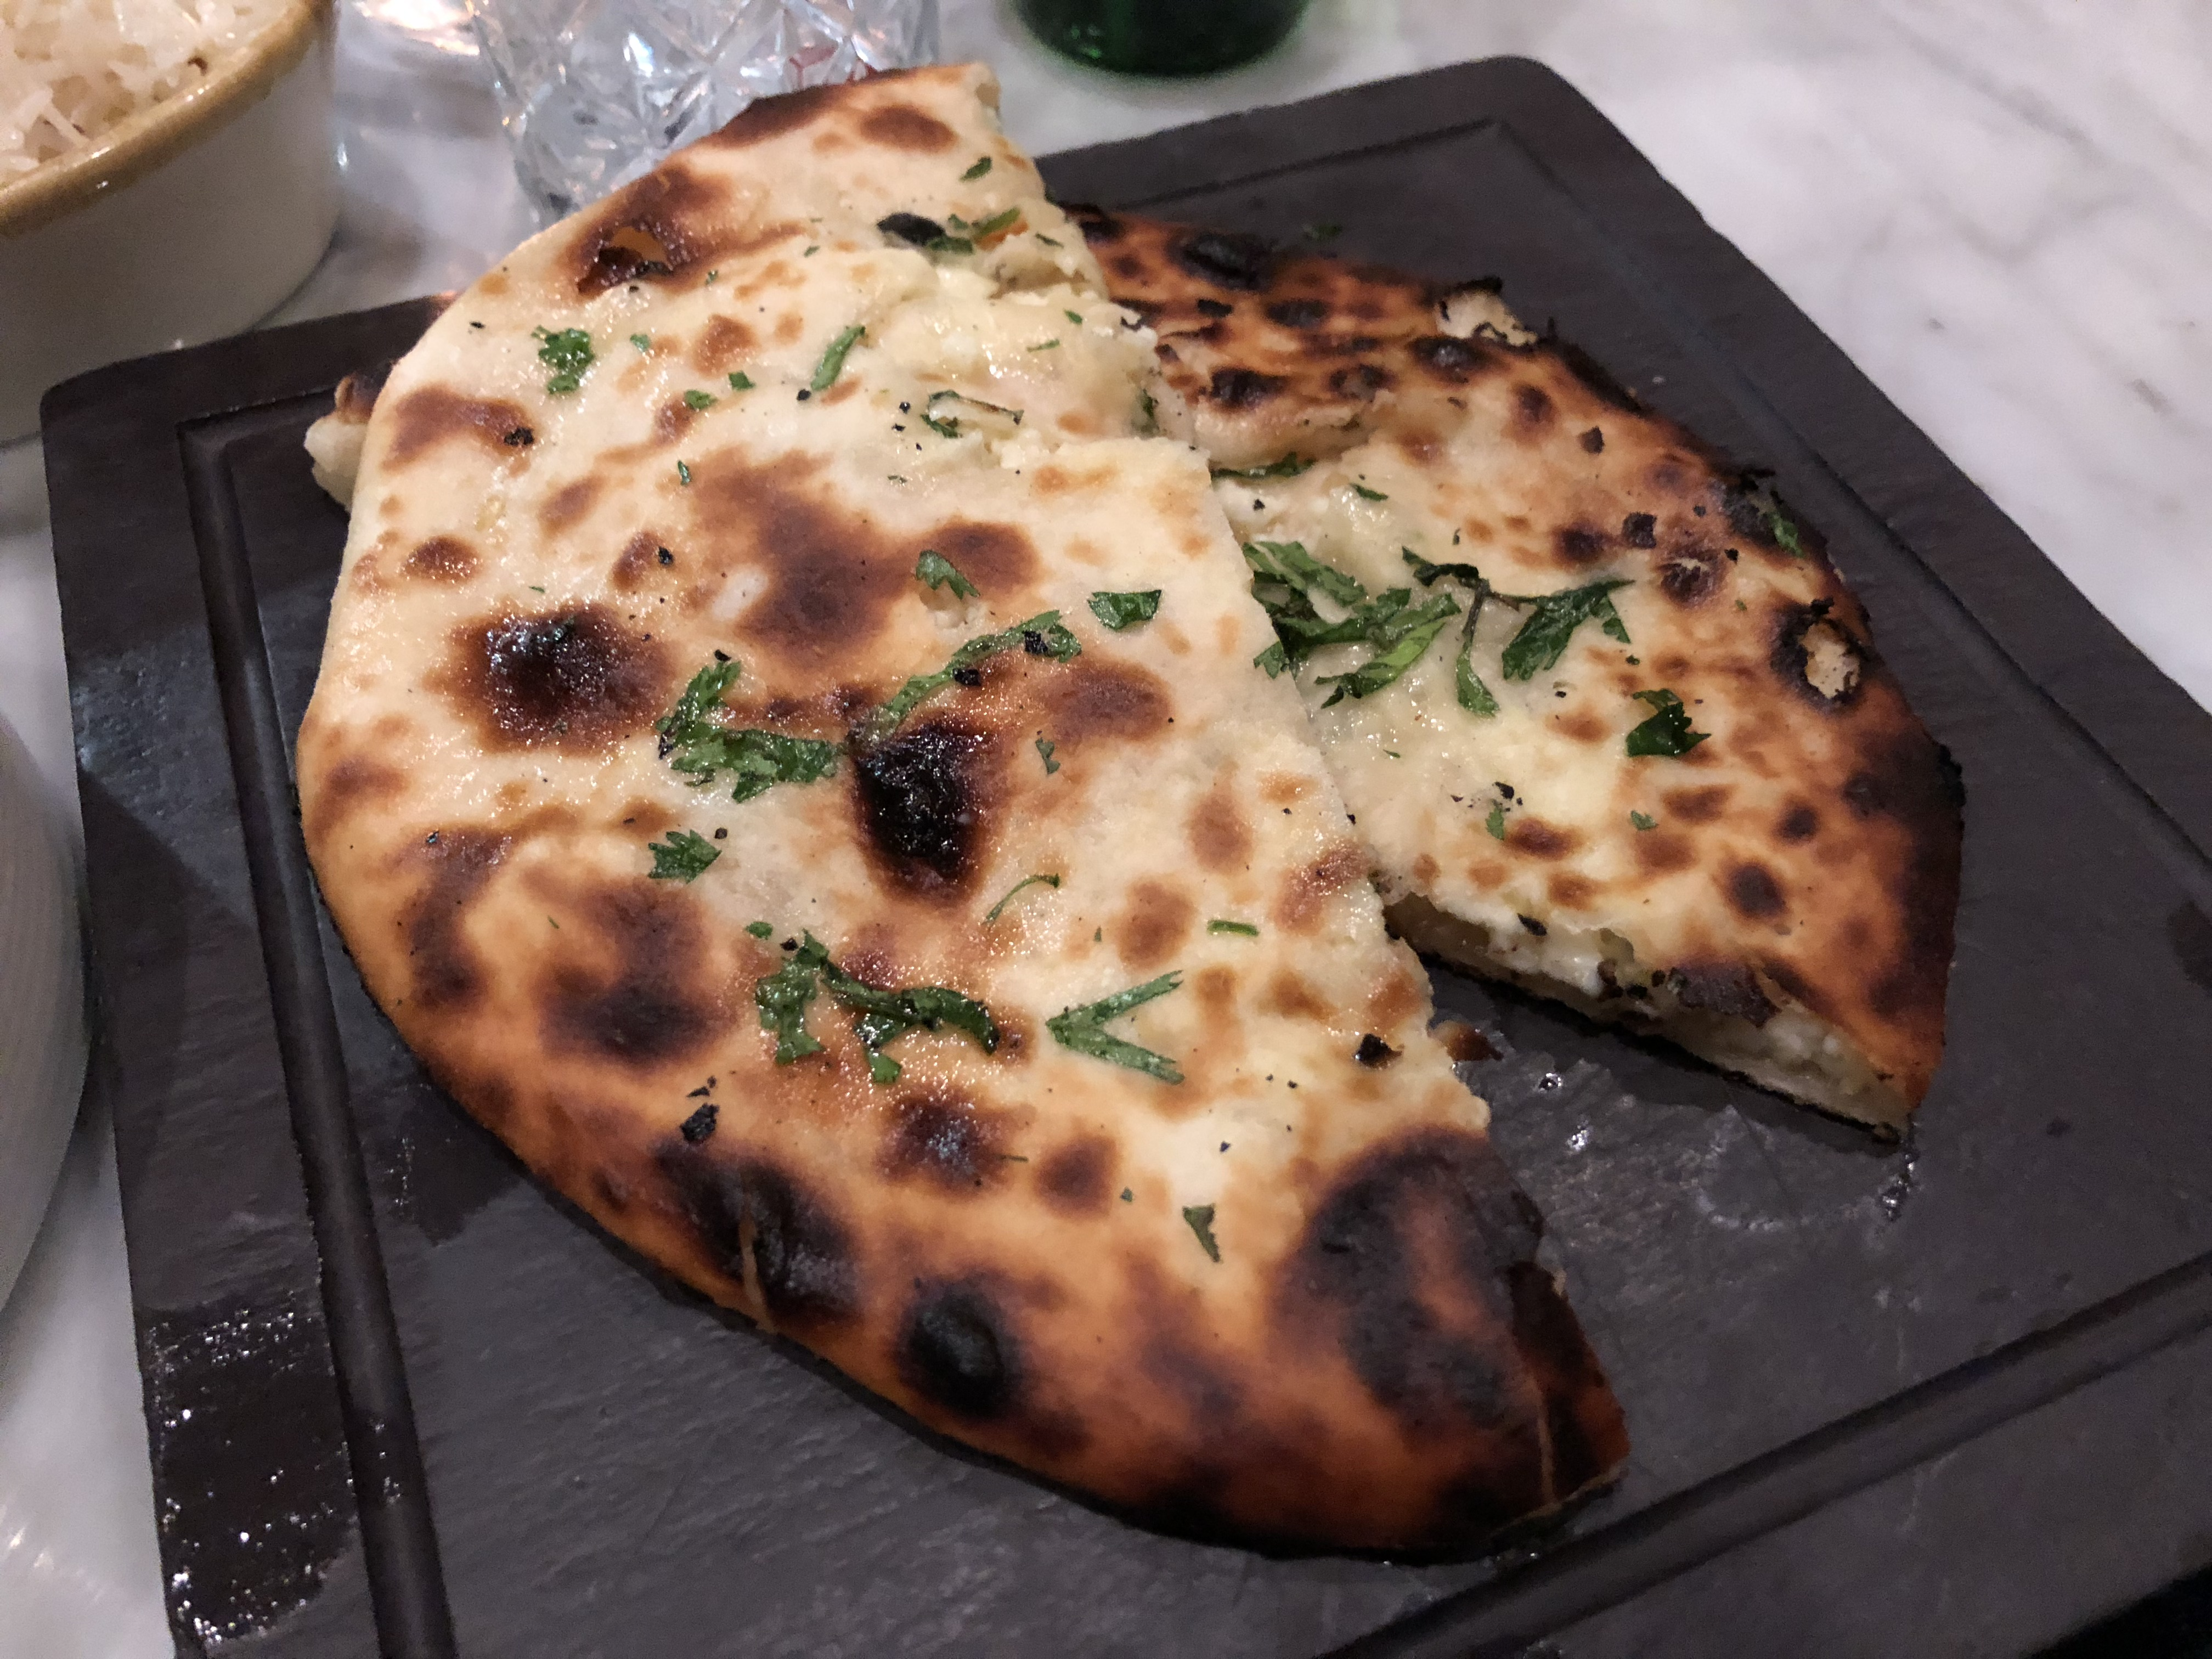 File:2020-02-22 20 57 14 Mixed herb and cheese naan bread at Karma Modern  Indian in Washington, D.C.jpg - Wikimedia Commons